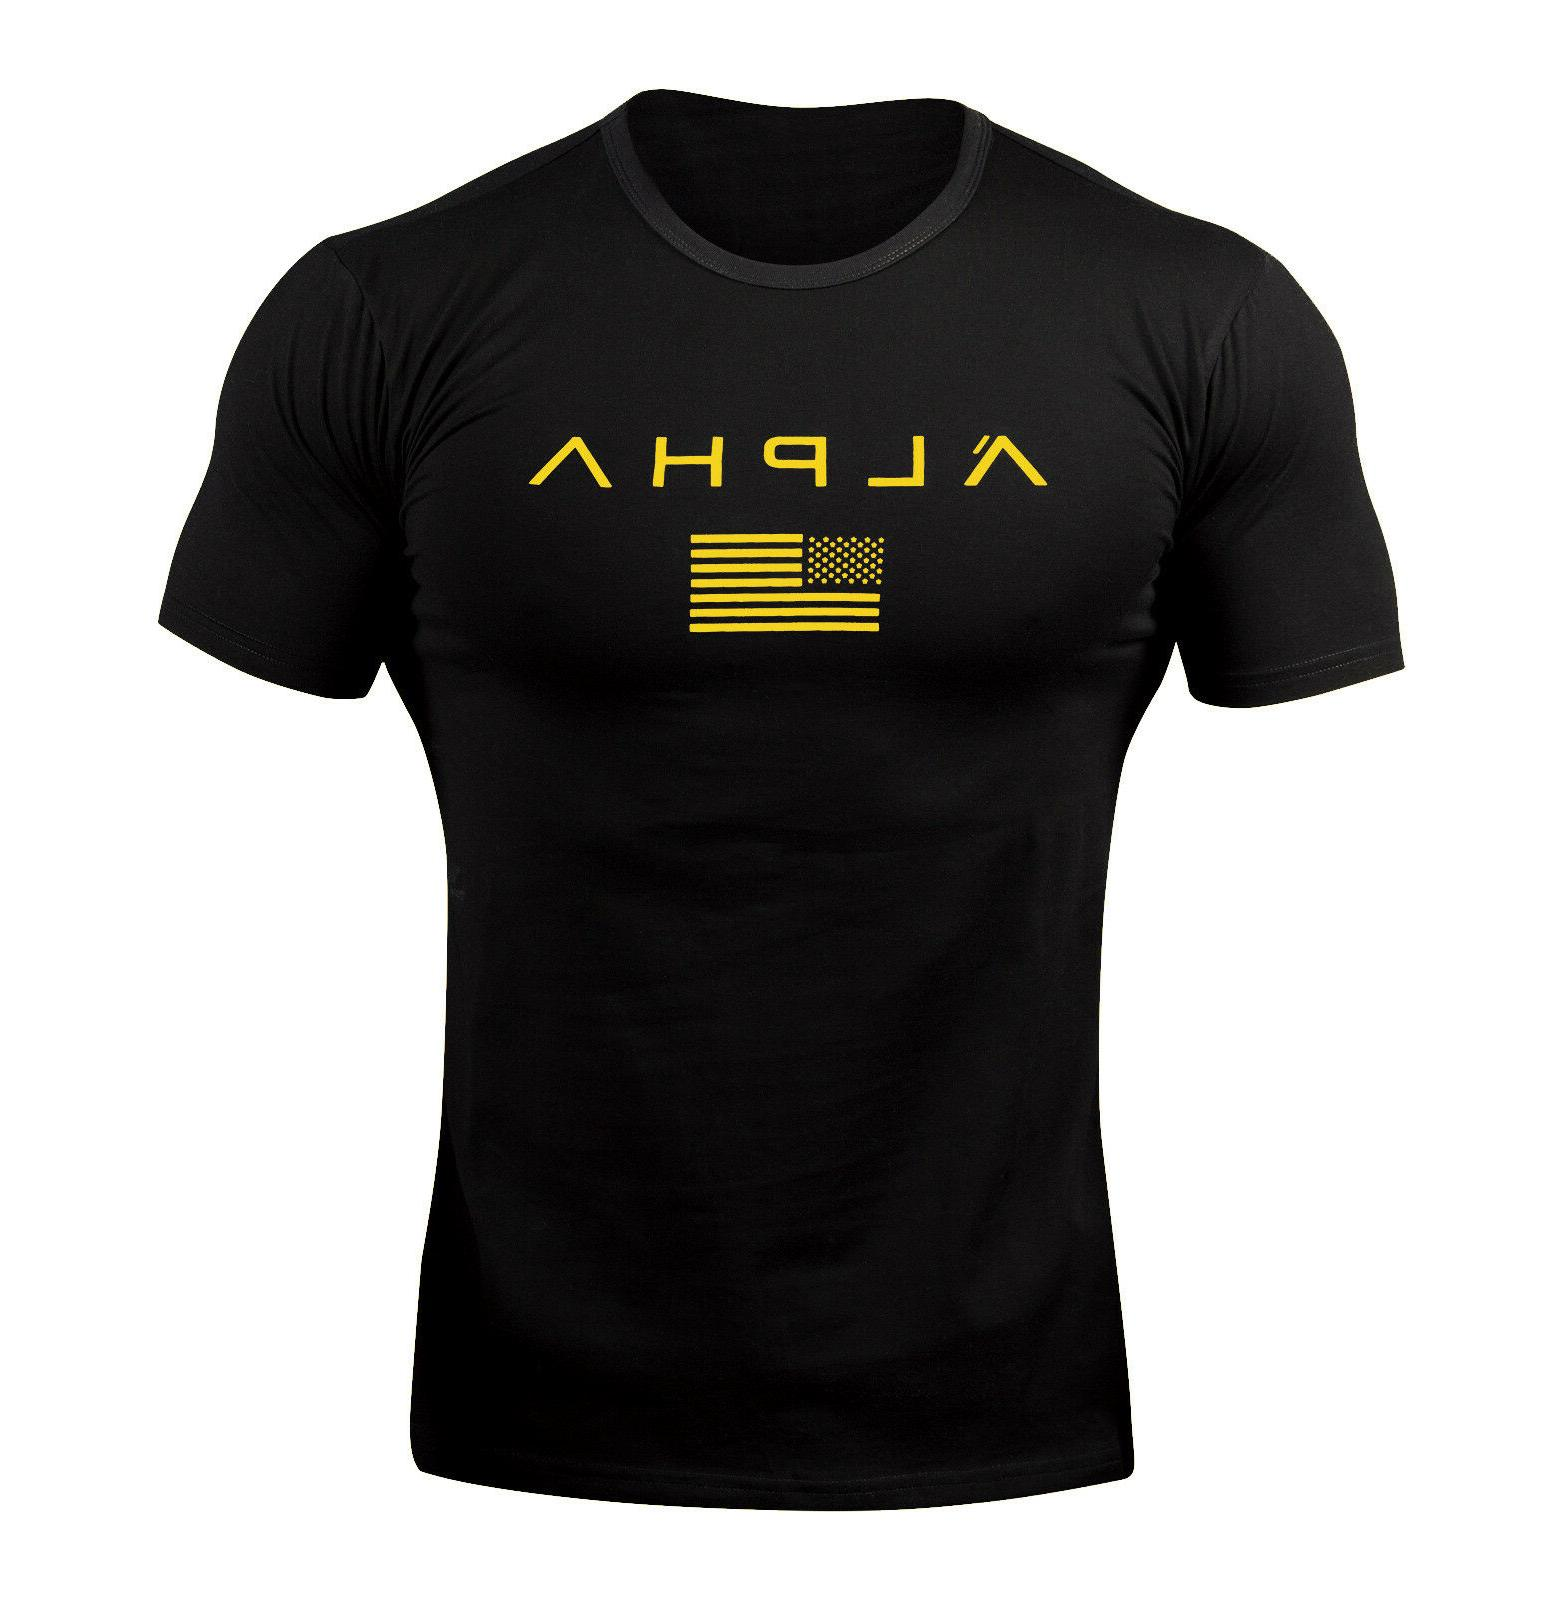 ALPHA Men Muscle Fitness Tee Clothes